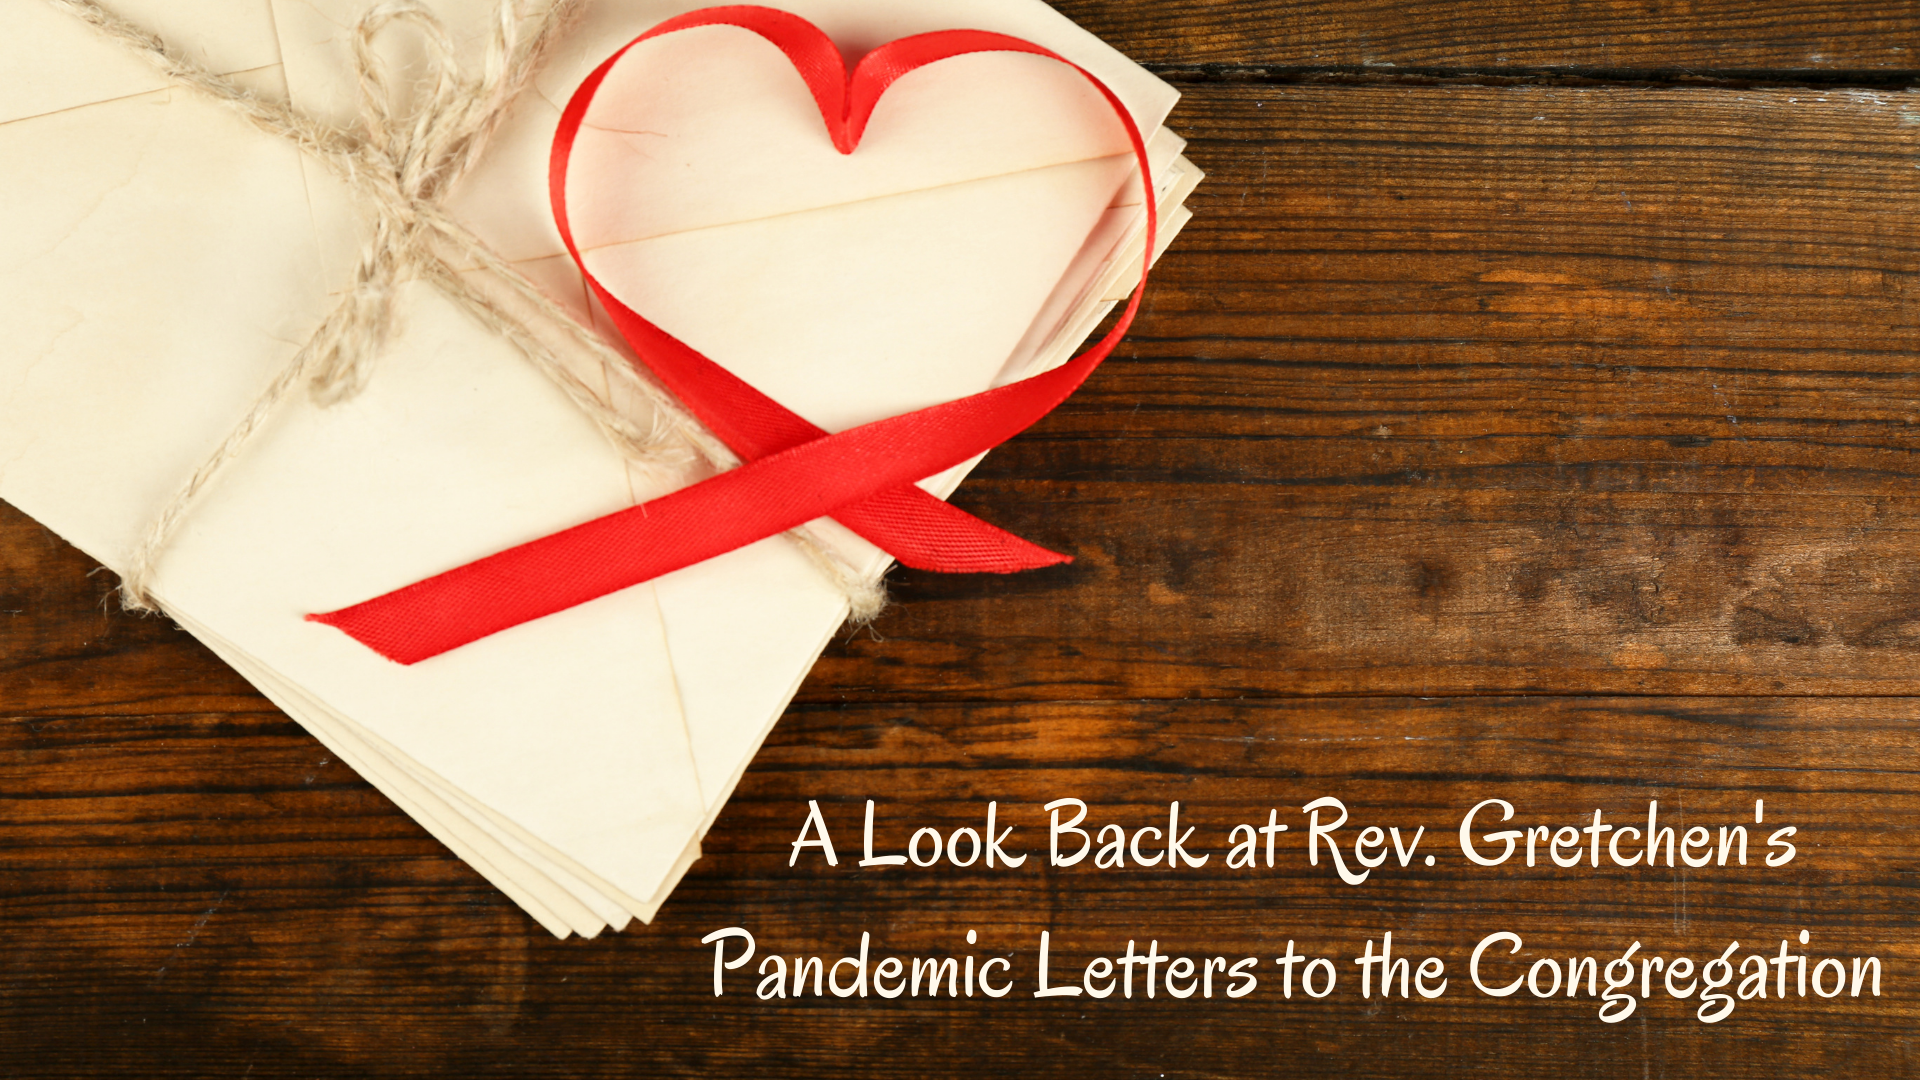 A Look Back at Rev. Gretchen's Pandemic Letters to the Congregation